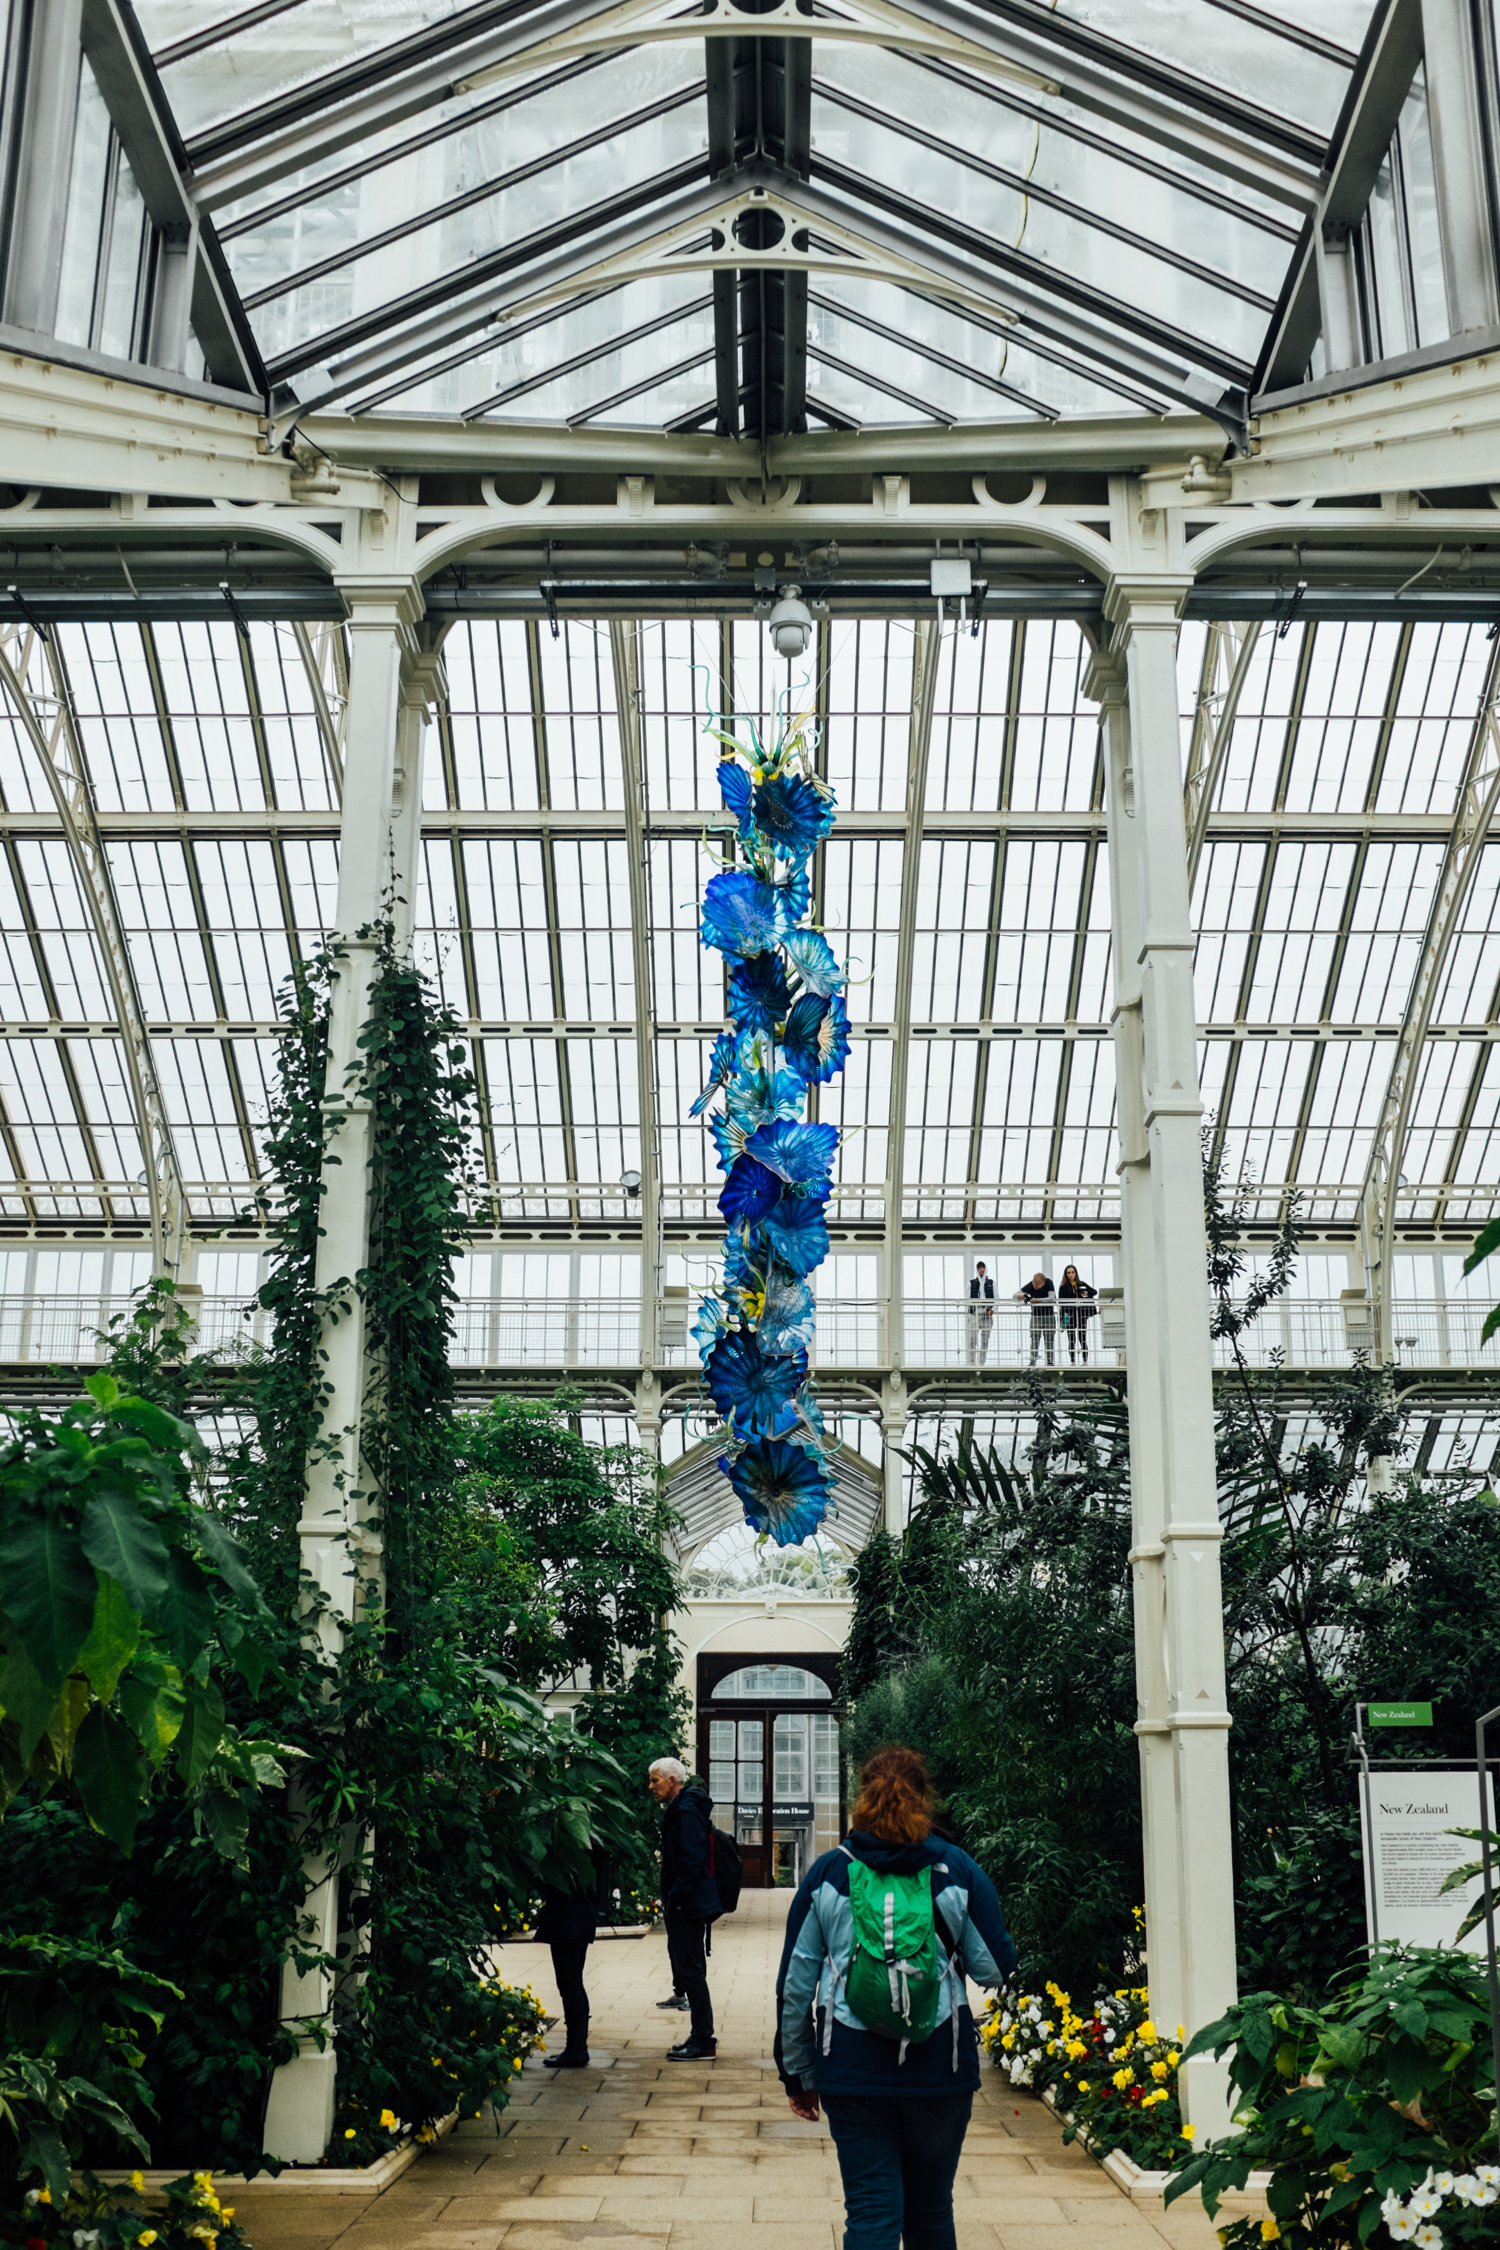 "<p>""Chihuly: Reflections on Nature"" is being shown at The Royal Botanic Gardens, Kew in London through October 27, 2019. Kew is 300 acres, and is the most diverse collection of living plants in the world. The Chihuly collection on display shows works of the Seattle artist from the past 50 years. Many pieces are being shown in the UK for the first time. (Image: Elizabeth Crook / Seattle Refined){&nbsp;}</p>"